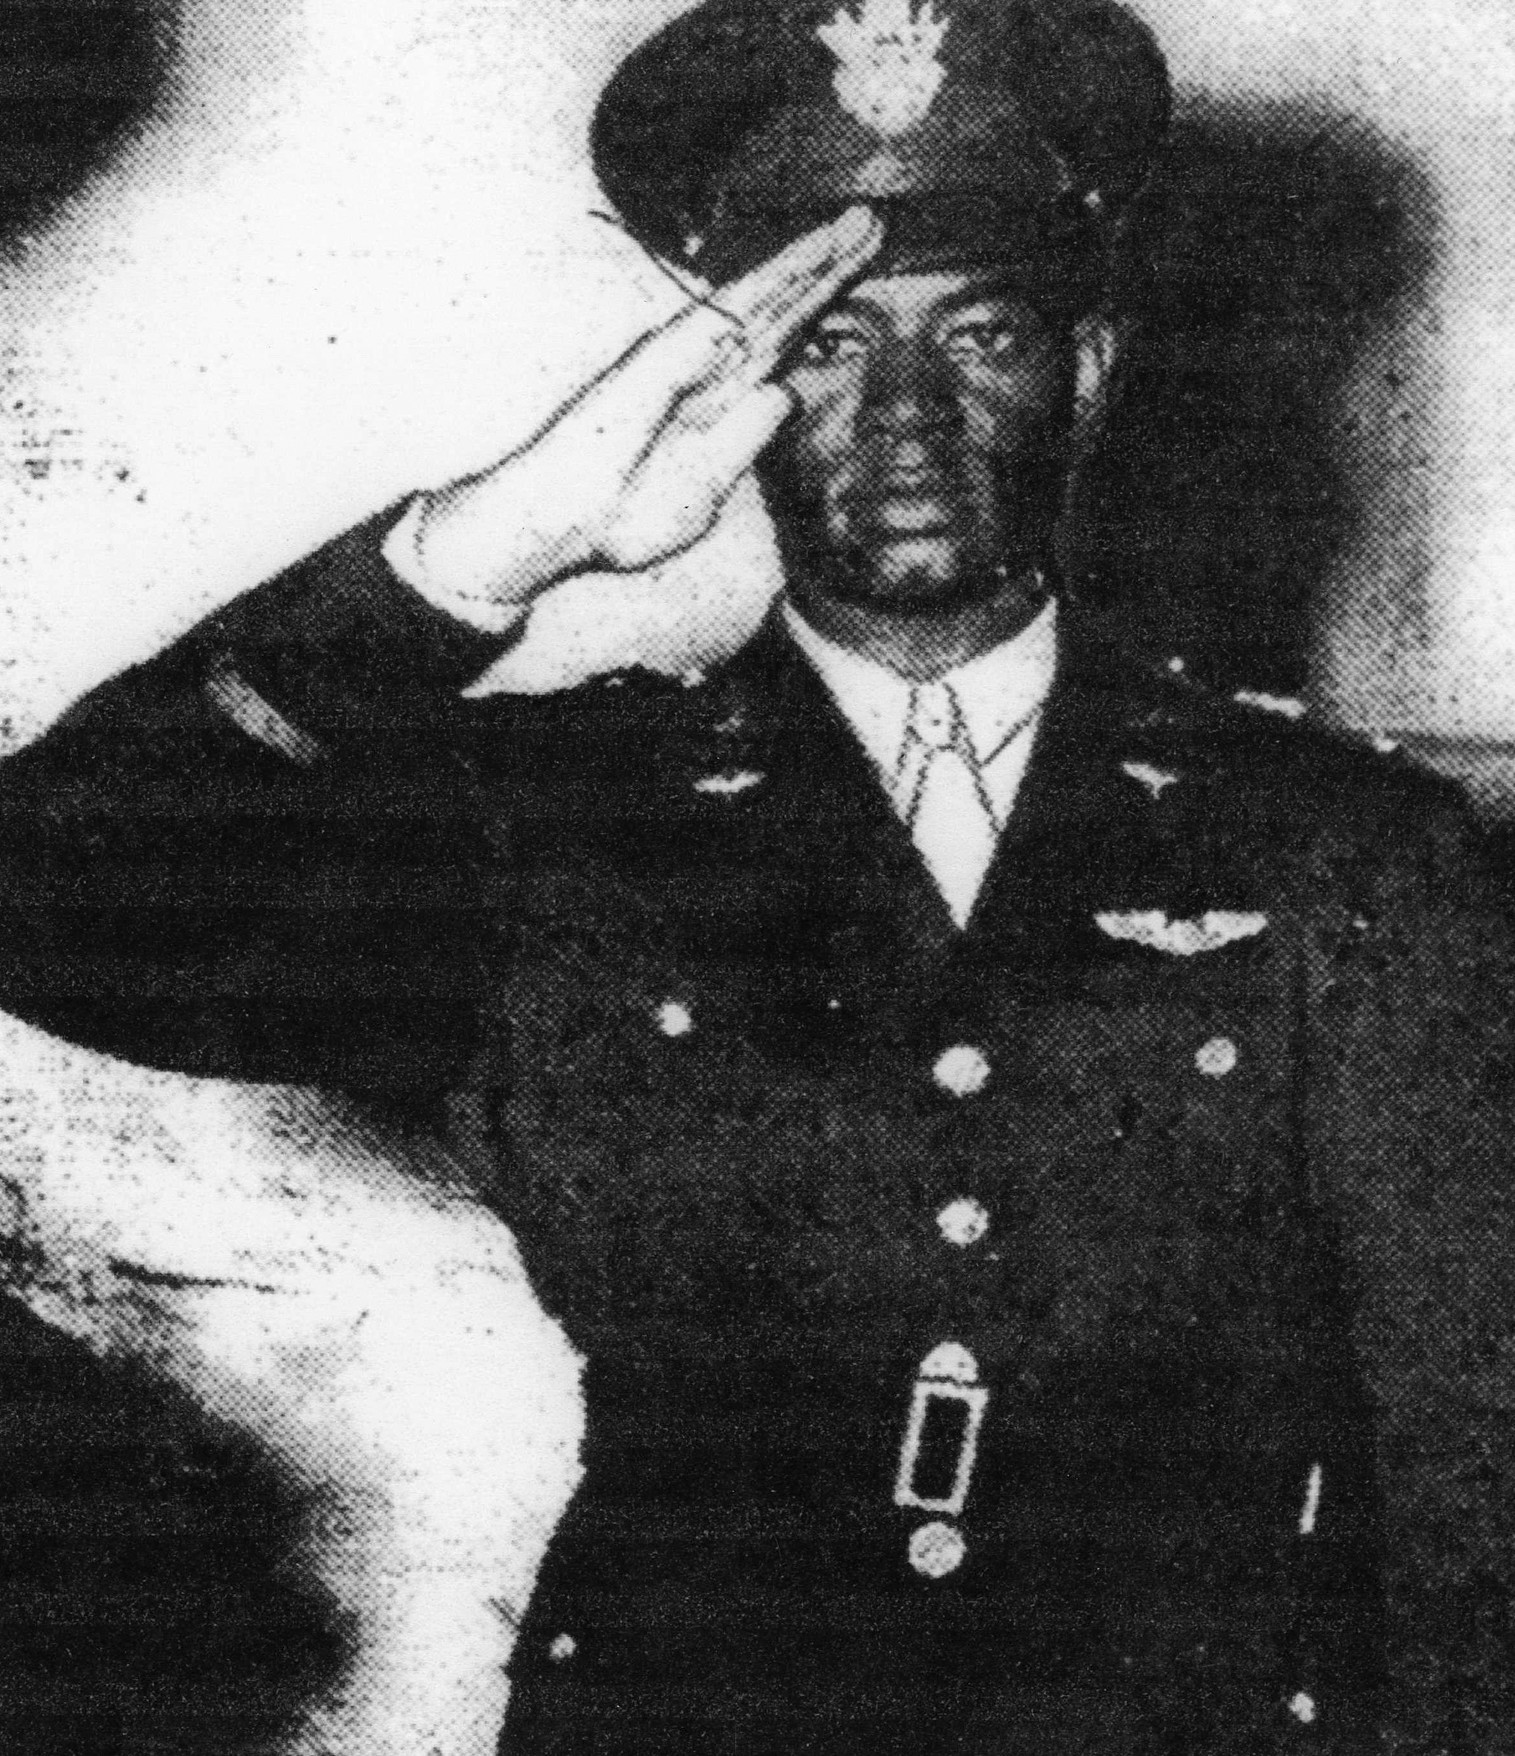 Lt. Willie Lee Ashley Jr.